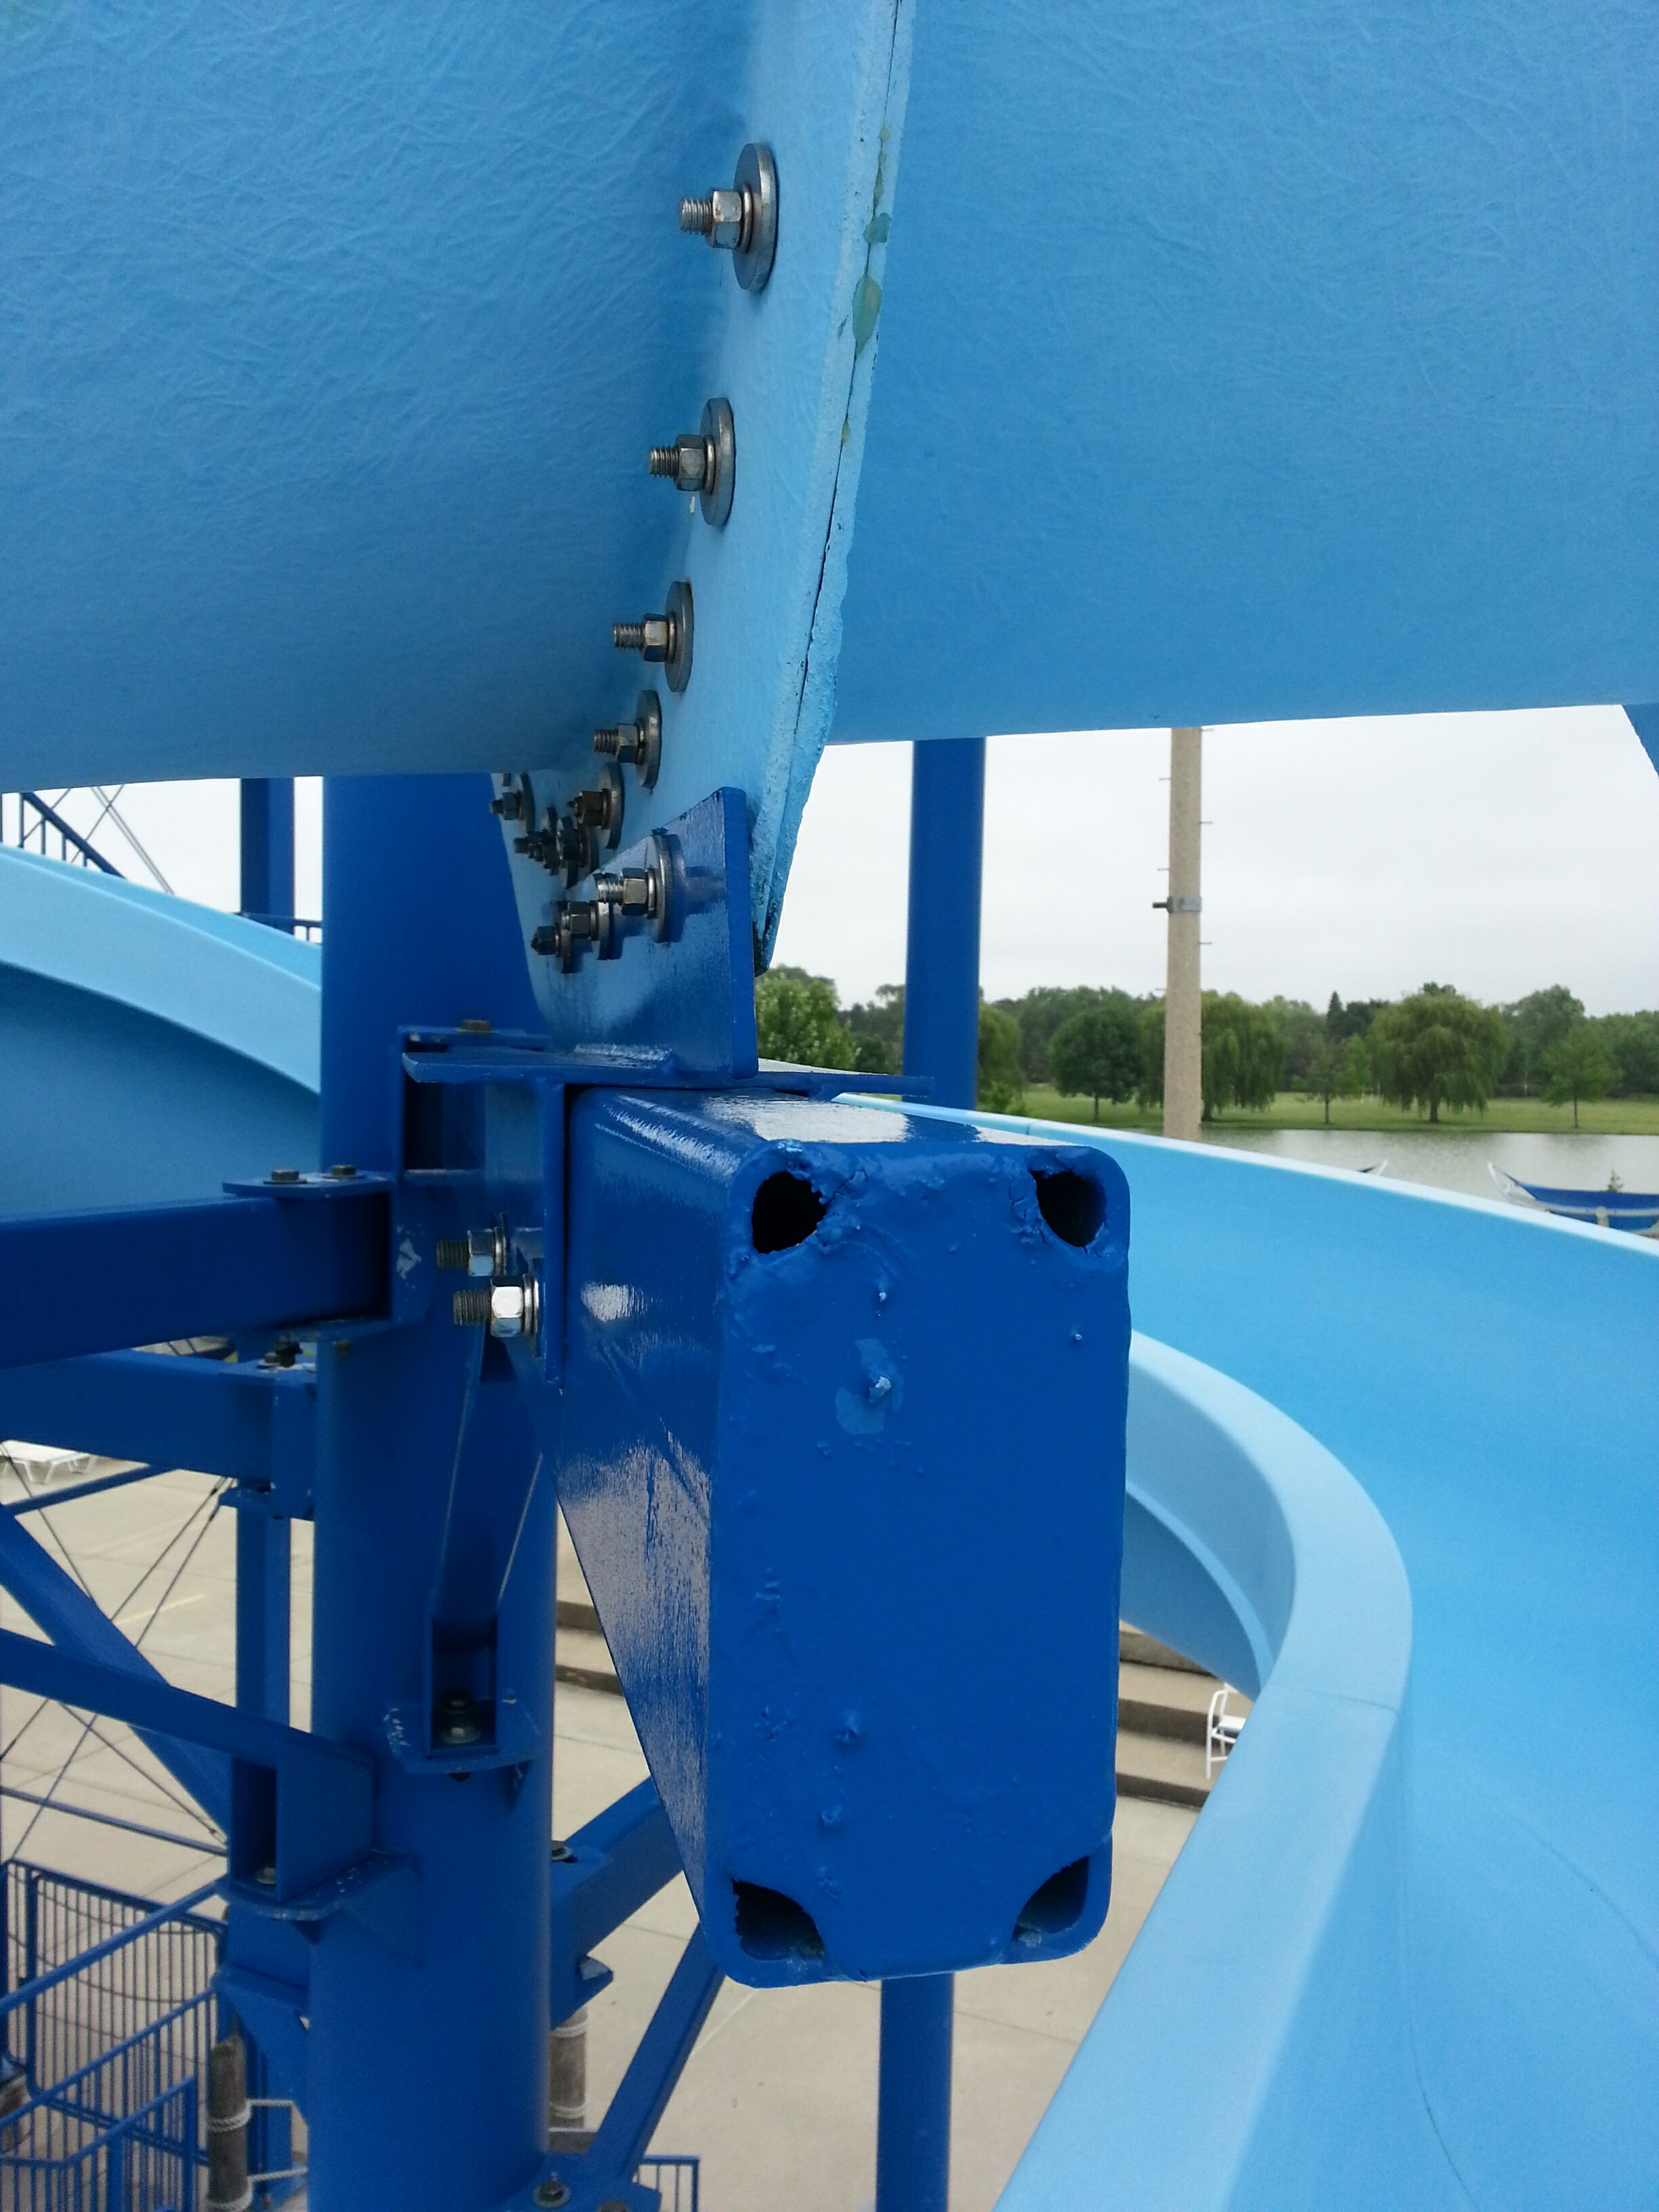 Close up of a blue body water slide